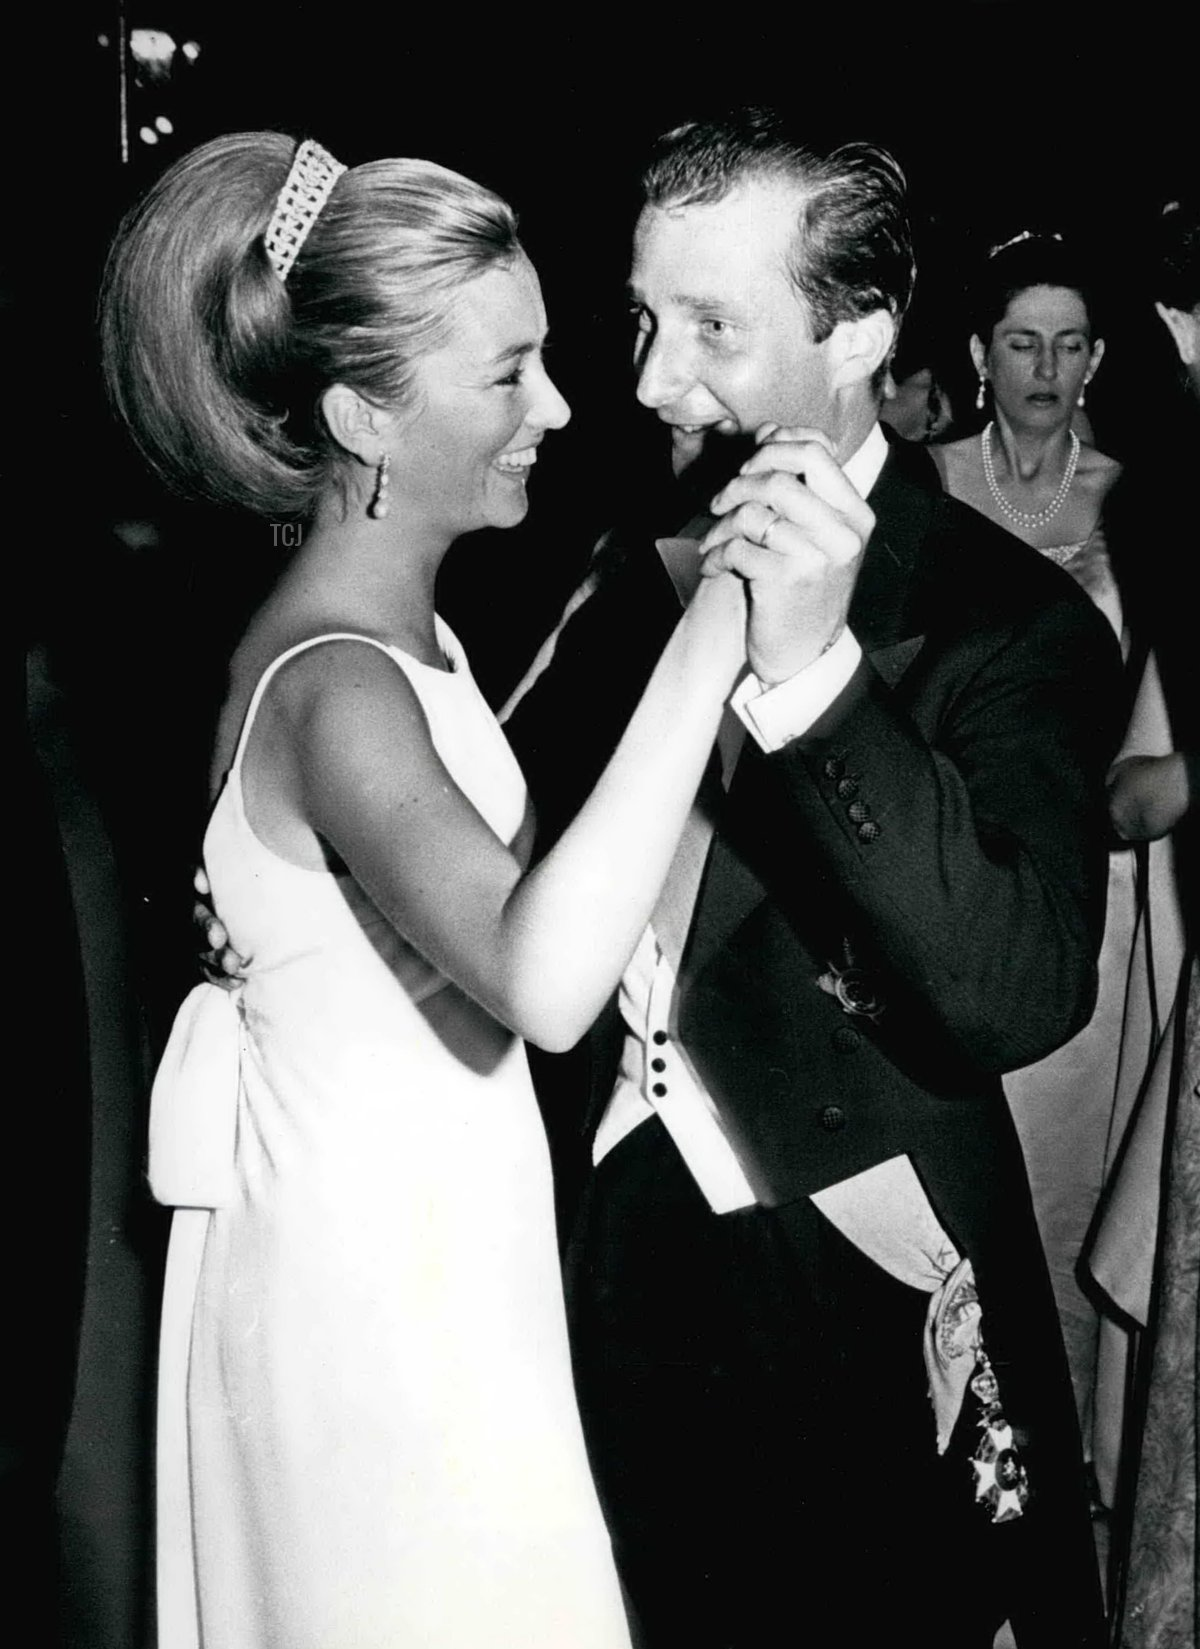 Prince Albert of Liege and his wife, Princess Paola, dancing during the Waterloo ball in Brussels, June 1965